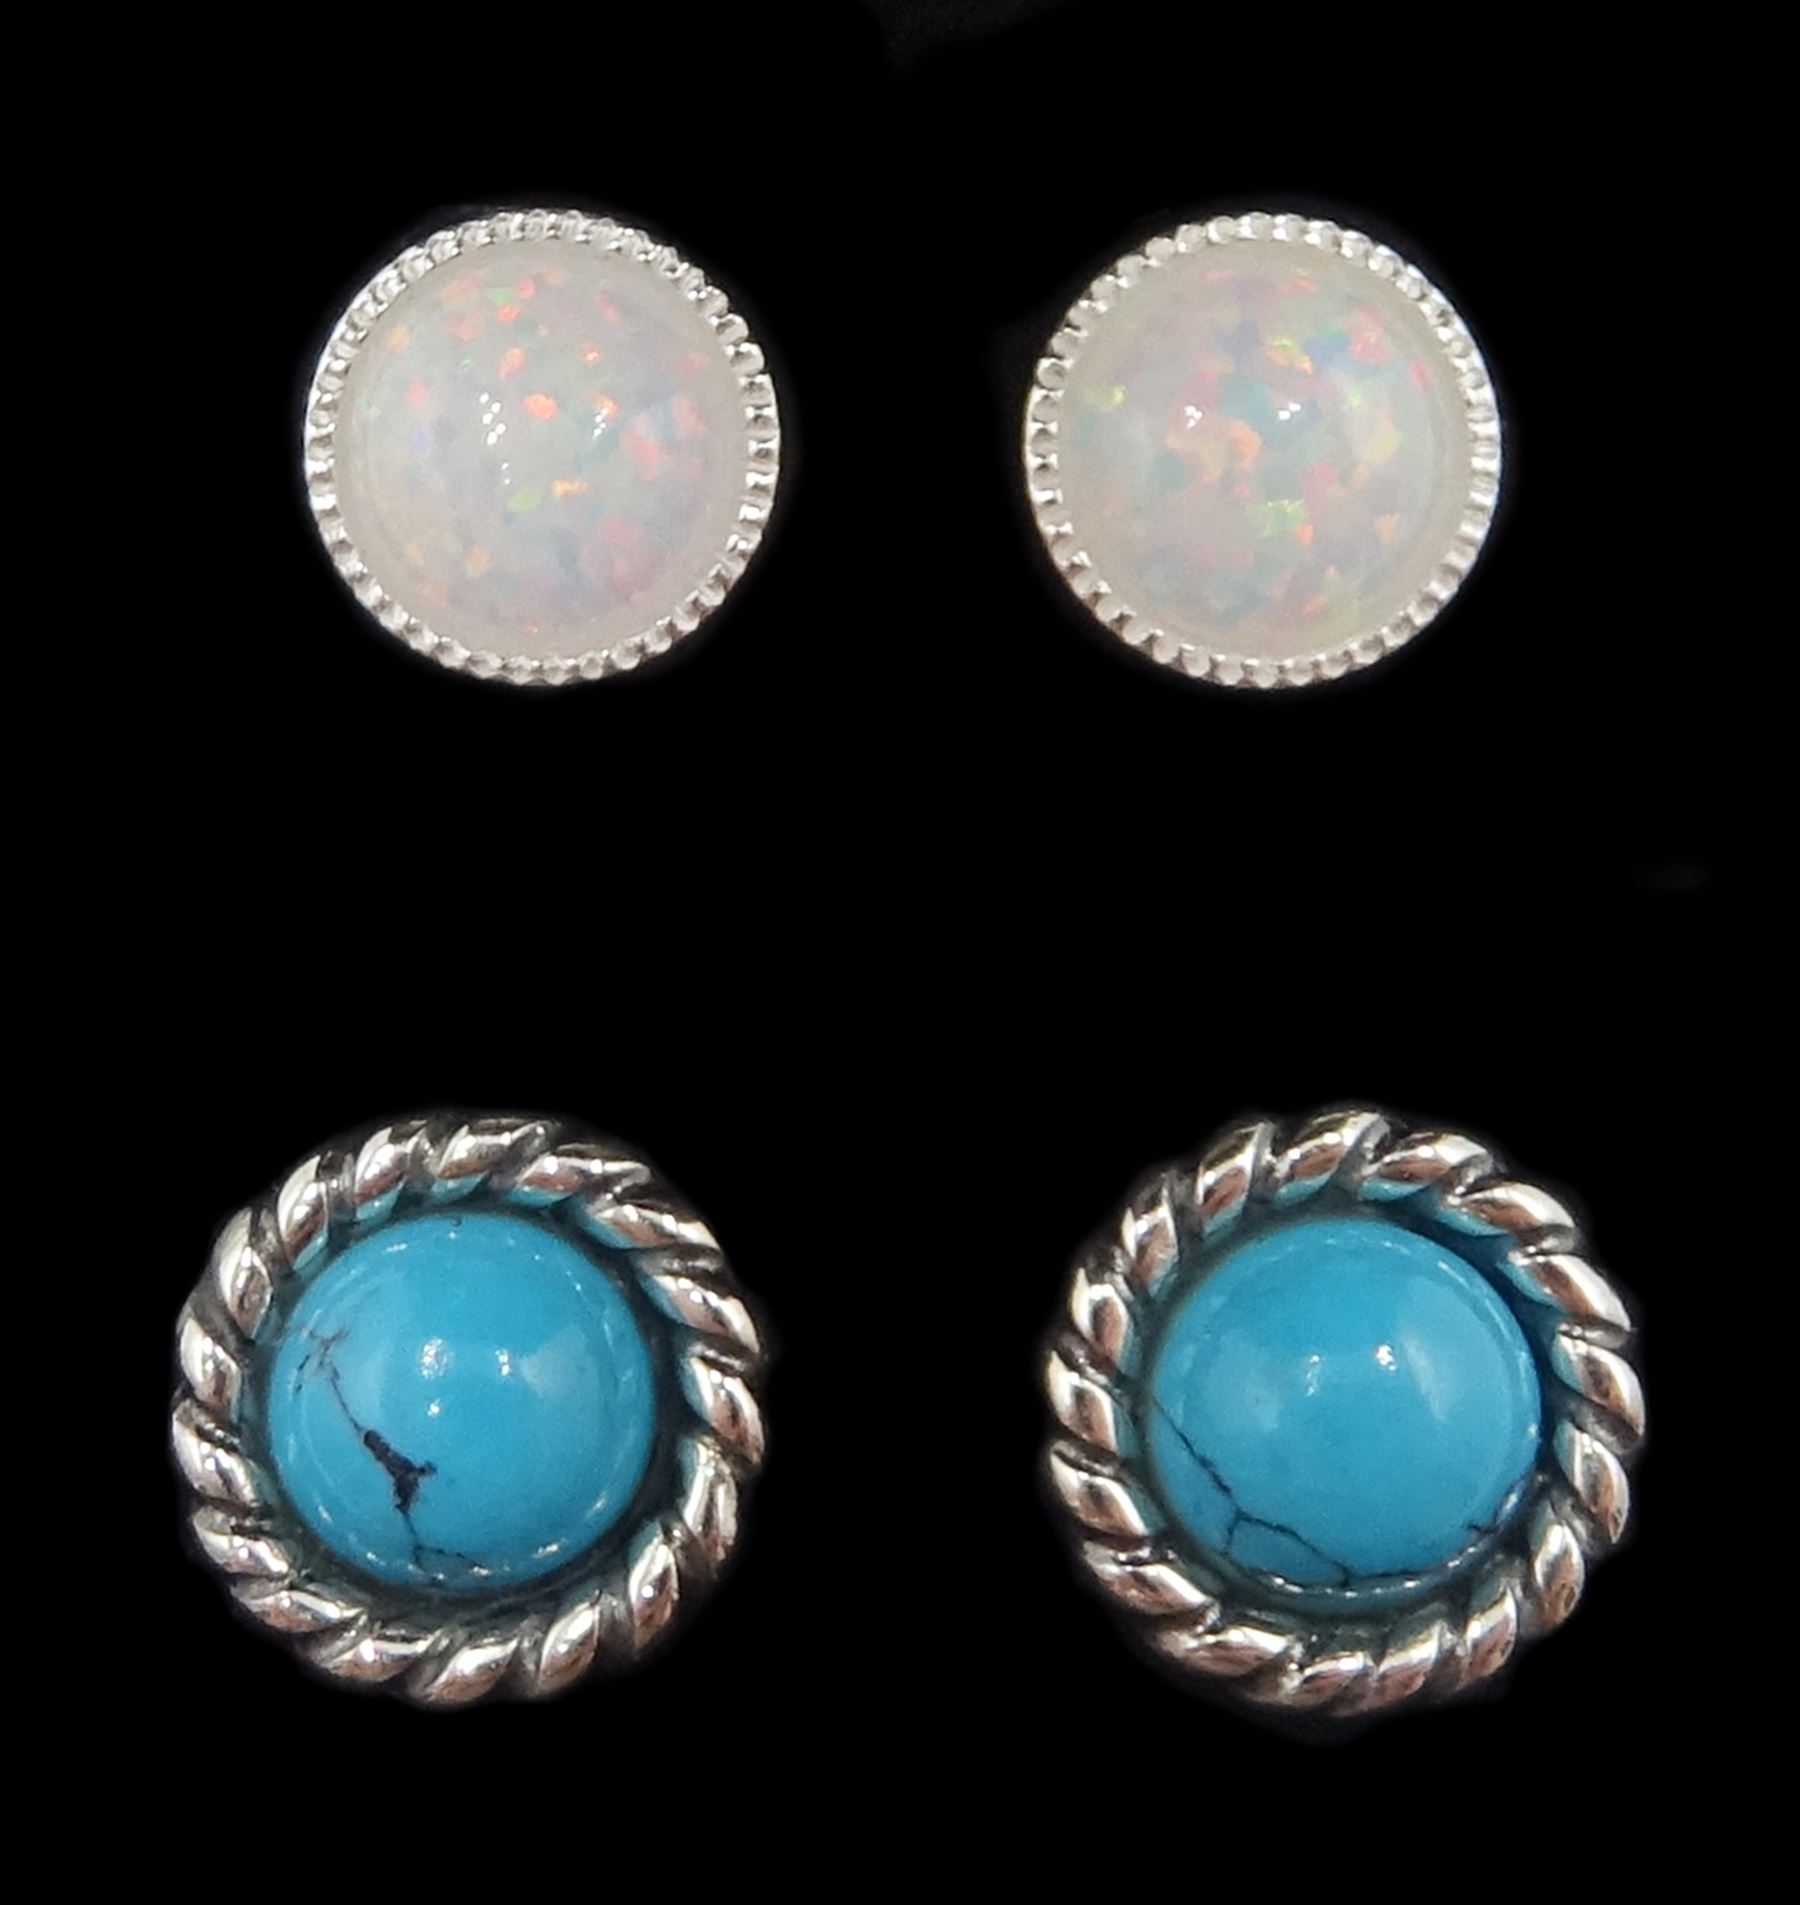 Pair of silver turquoise stud earrings and one other pair of silver opal stud earrings